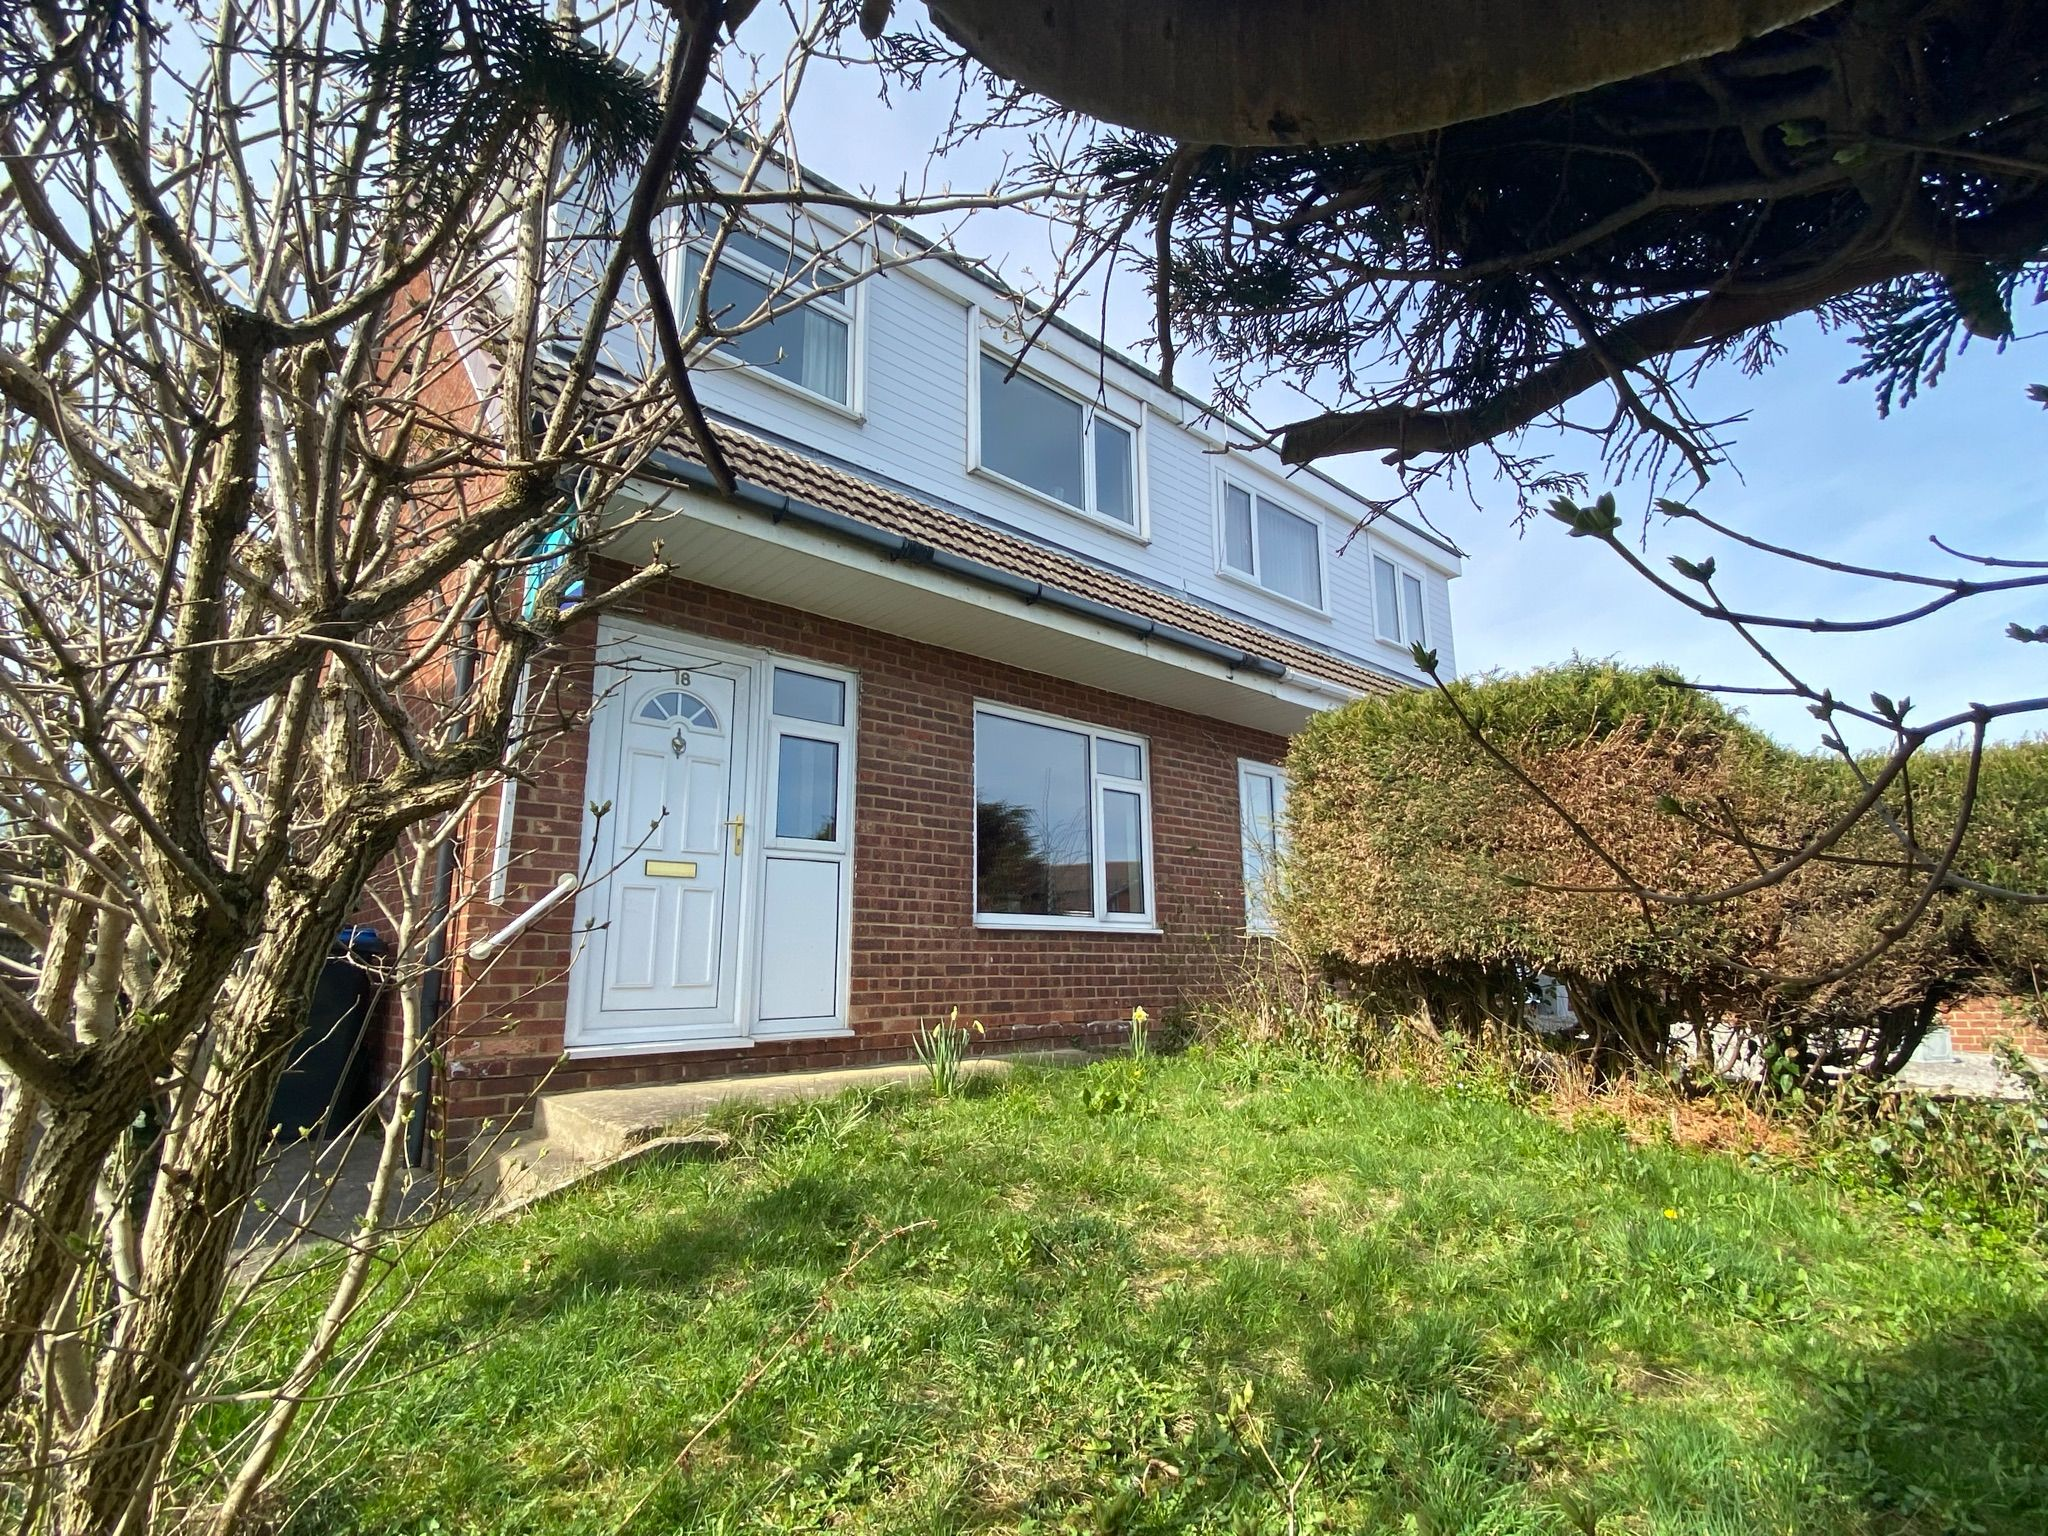 3 bedroom semi-detached house Sale Agreed in Bishop Auckland - Photograph 2.